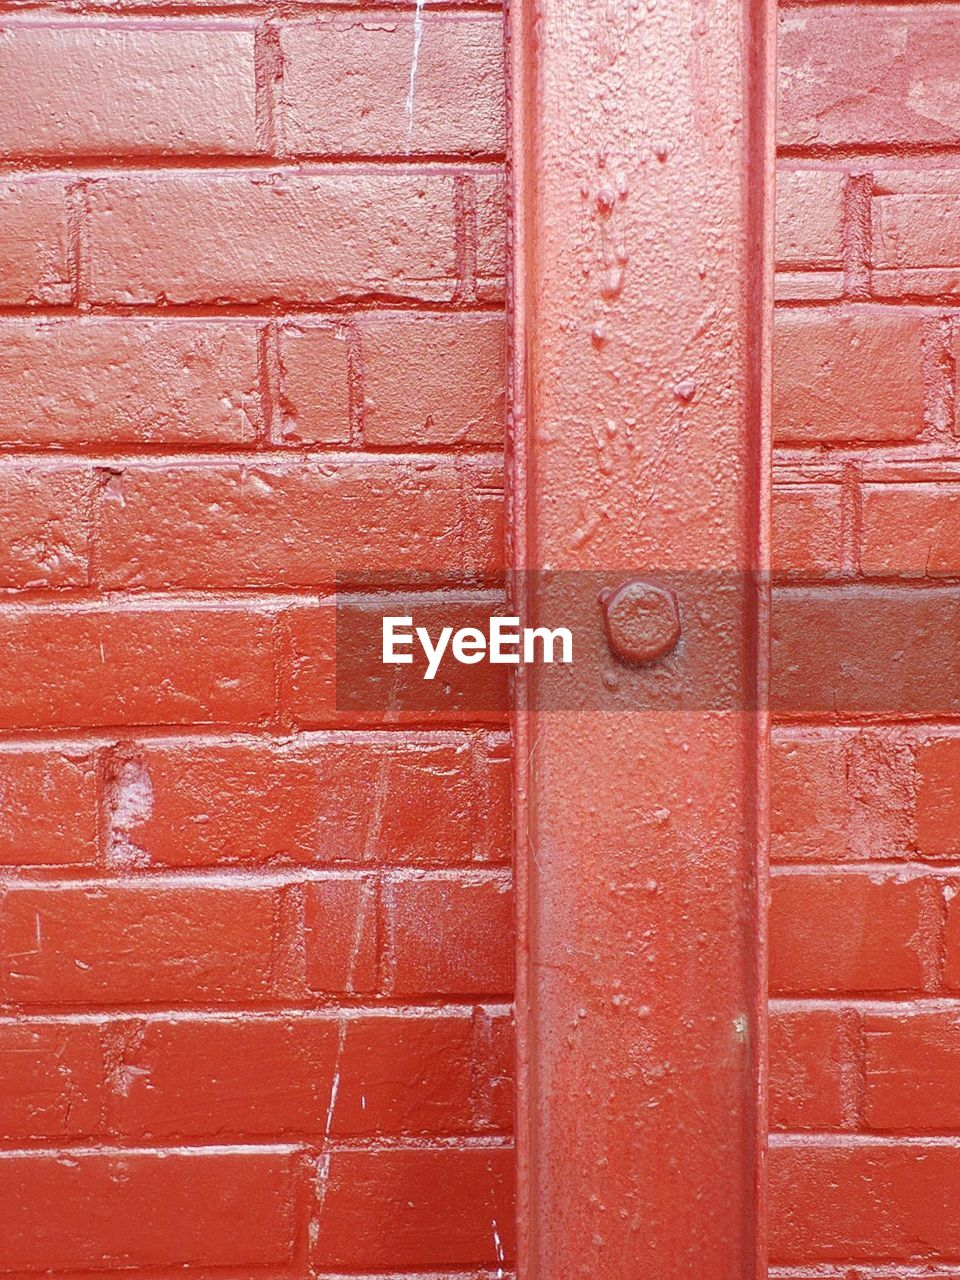 brick wall, brick, wall, full frame, red, pattern, backgrounds, wall - building feature, no people, built structure, architecture, textured, day, close-up, building exterior, outdoors, entrance, door, wood - material, brown